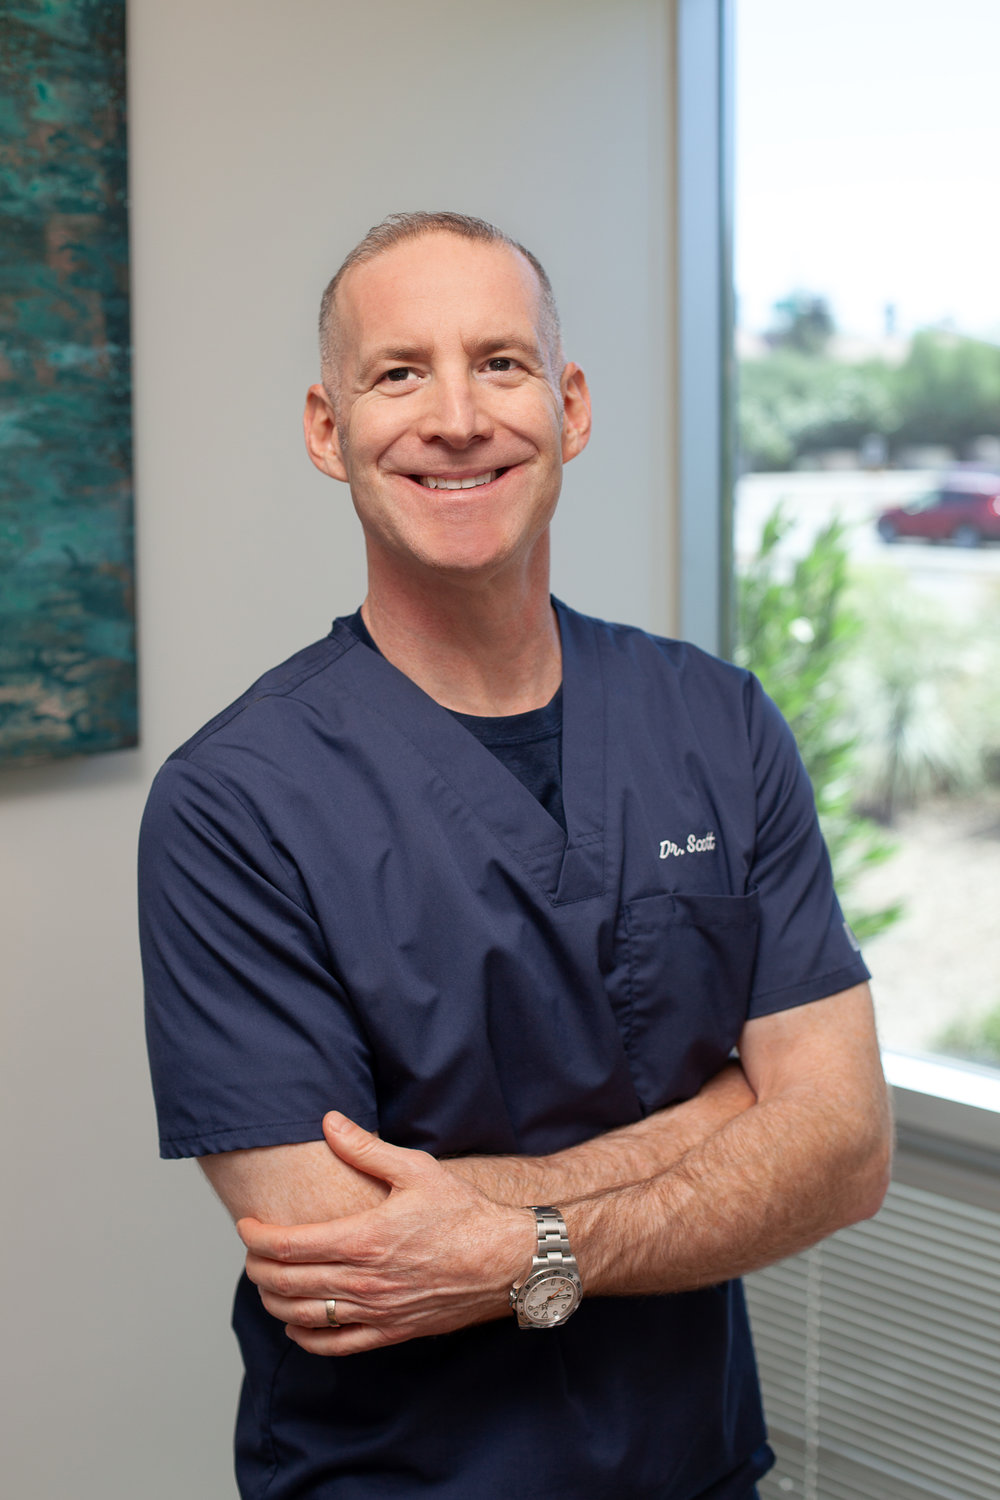 Scott Wexler, DMD - Dr. Wexler is a member of the Arizona Dental Association, the American Dental Association, and the American Academy of Pediatric Dentistry. He is committed to continuing education and takes many advanced courses each year to enhance his skills to better serve the dental care needs of his patients and provide them with a gentle and comfortable dental experience.